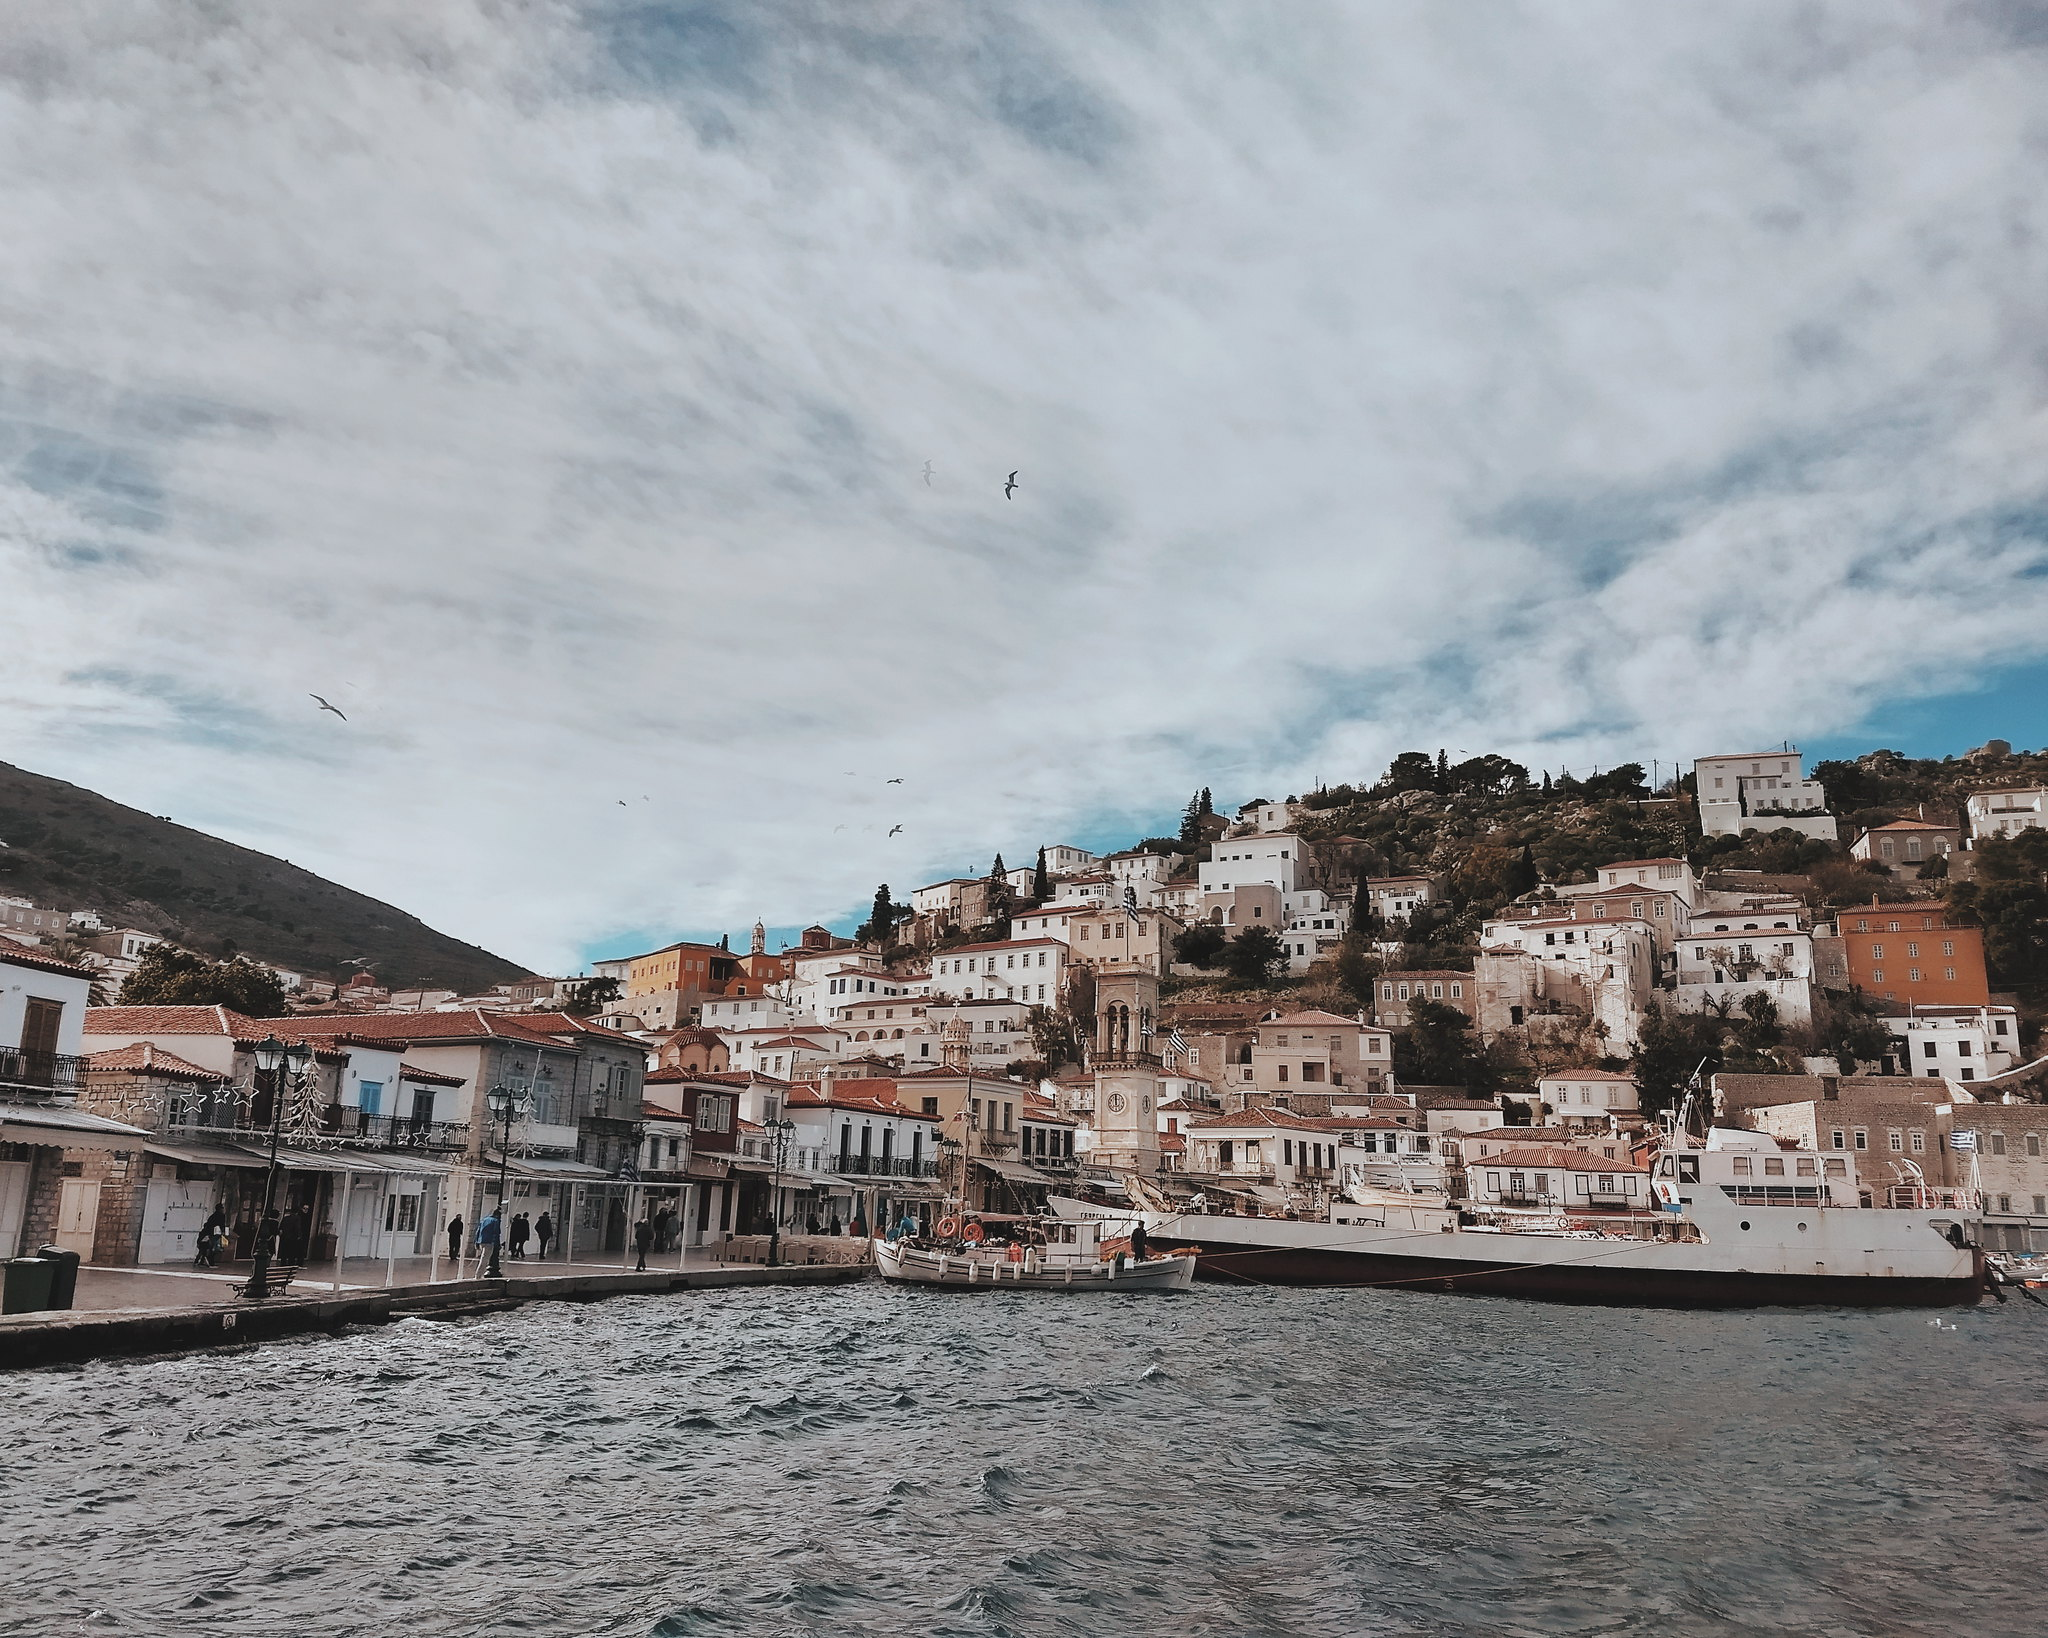 Hydra Day Cruise from Athens Review